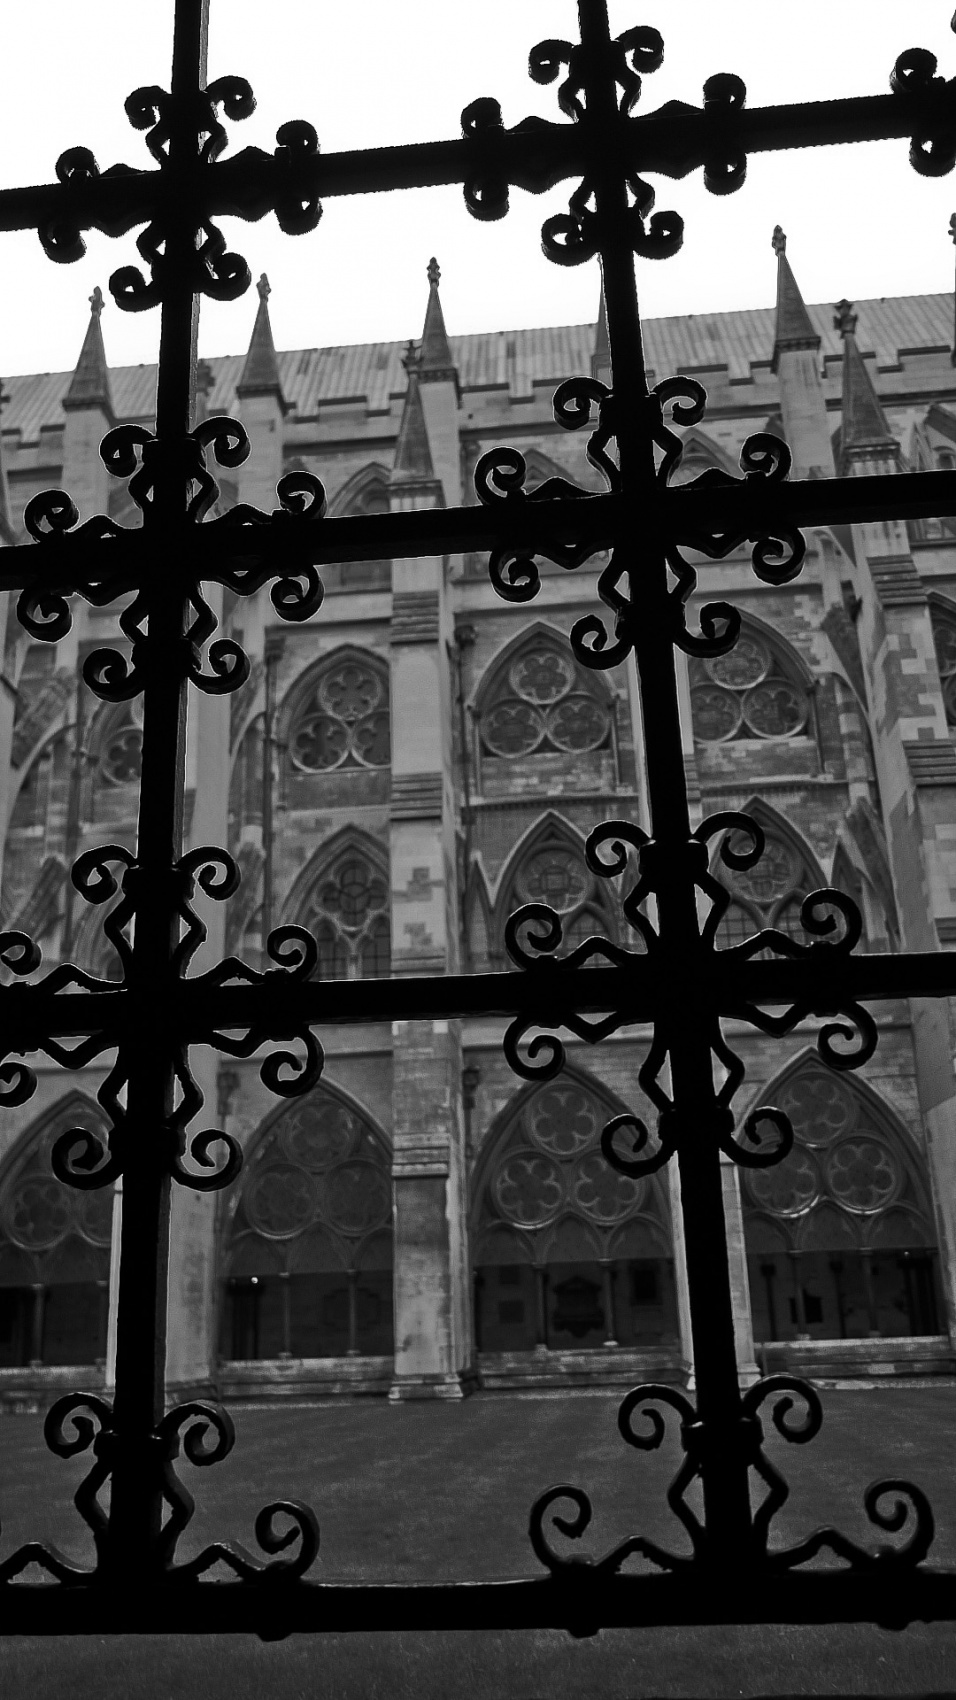 Caught In Time - Westminster Abbey, London